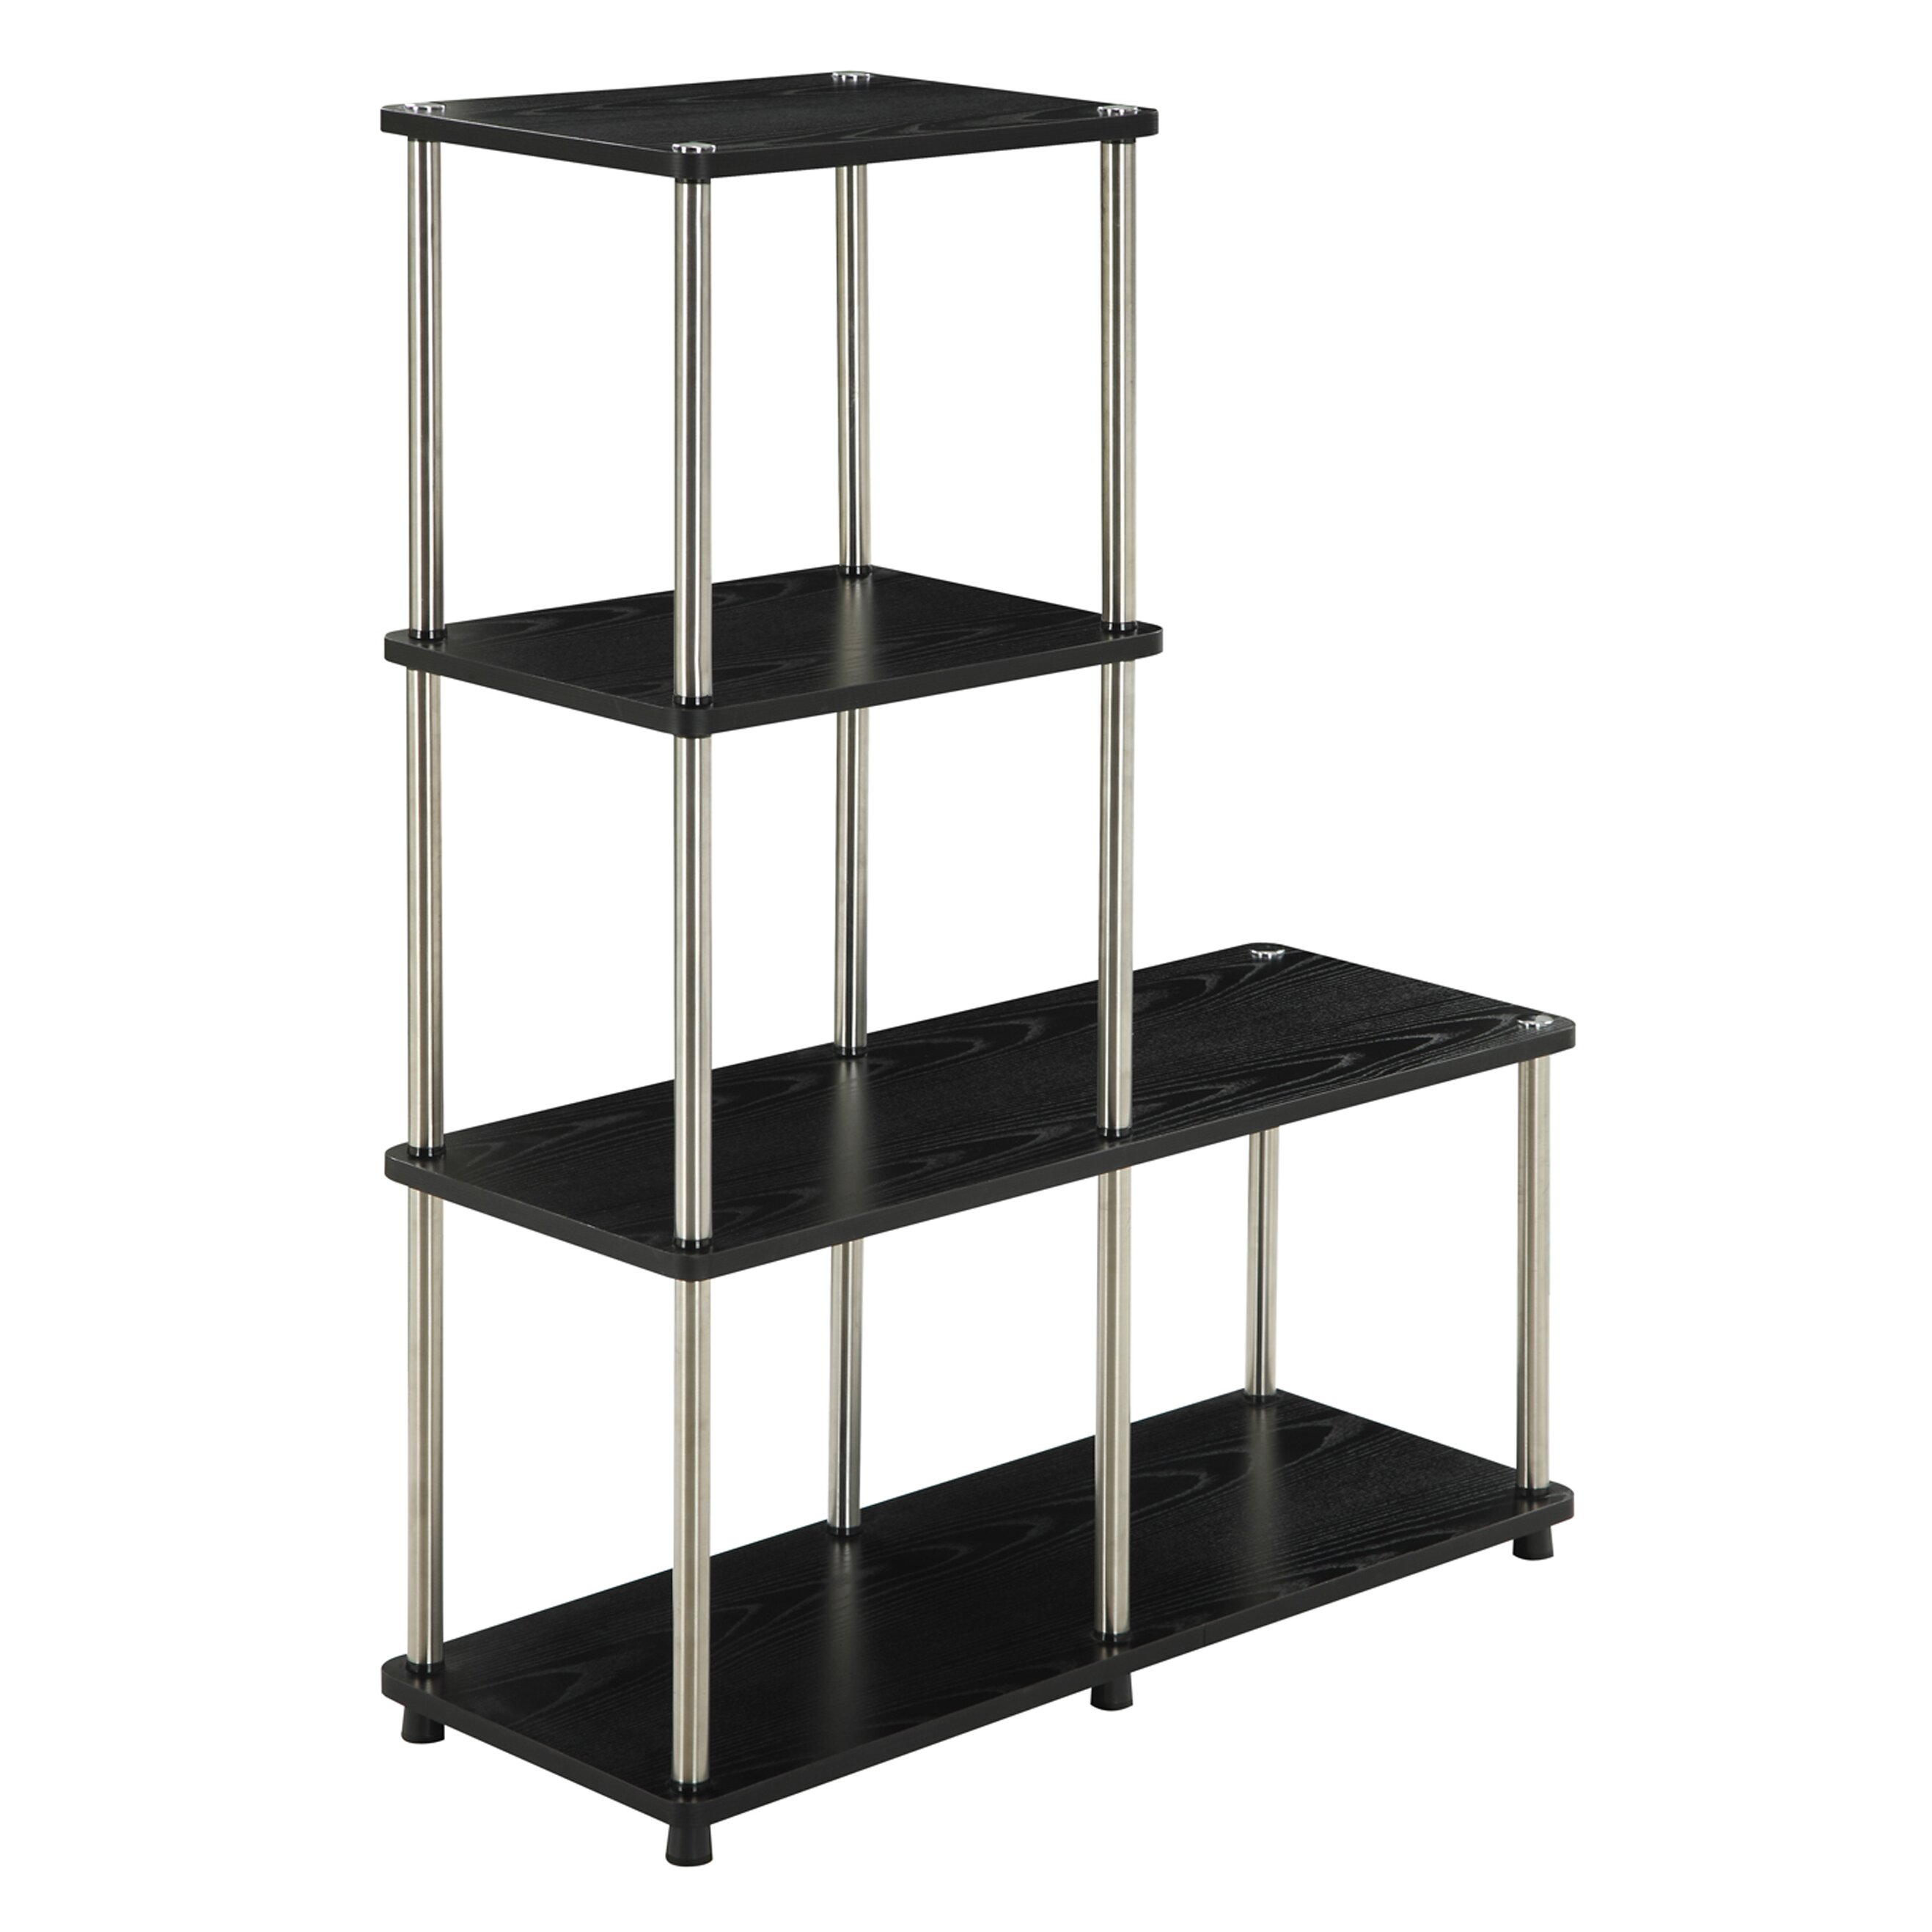 Go Multi L Shaped 41 Accent Shelves Bookcase & Revi . Full resolution‎  portraiture, nominally Width 2635 Height 2635 pixels, portraiture with #716C5A.